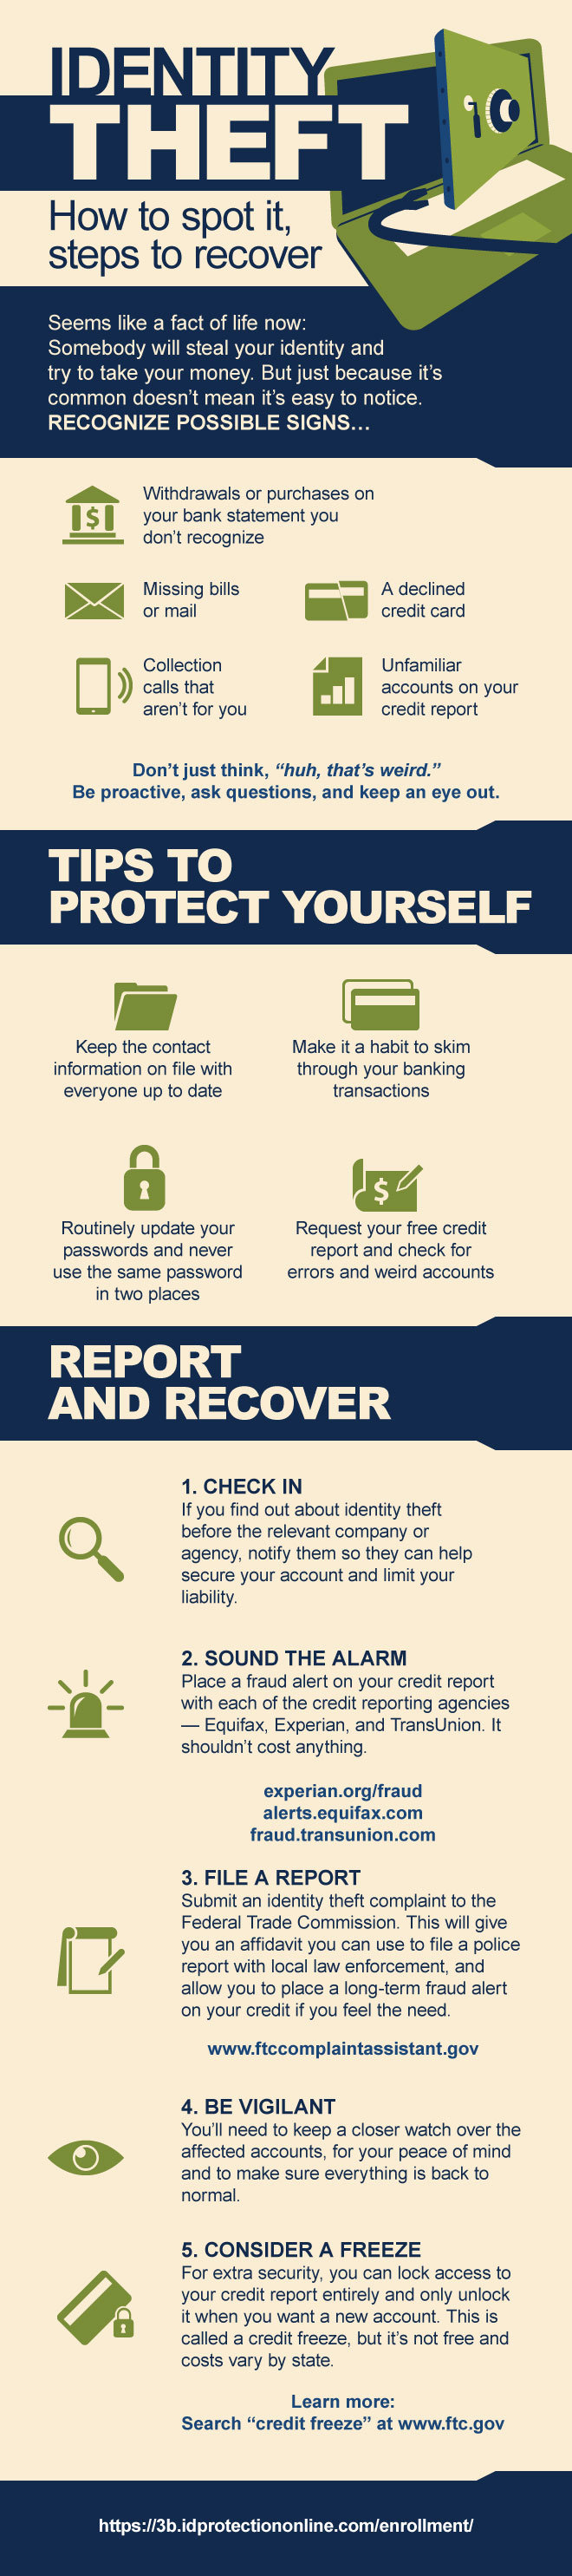 Use Consolidated Credit's identity theft protection infographic to guard against ID theft and credit fraud